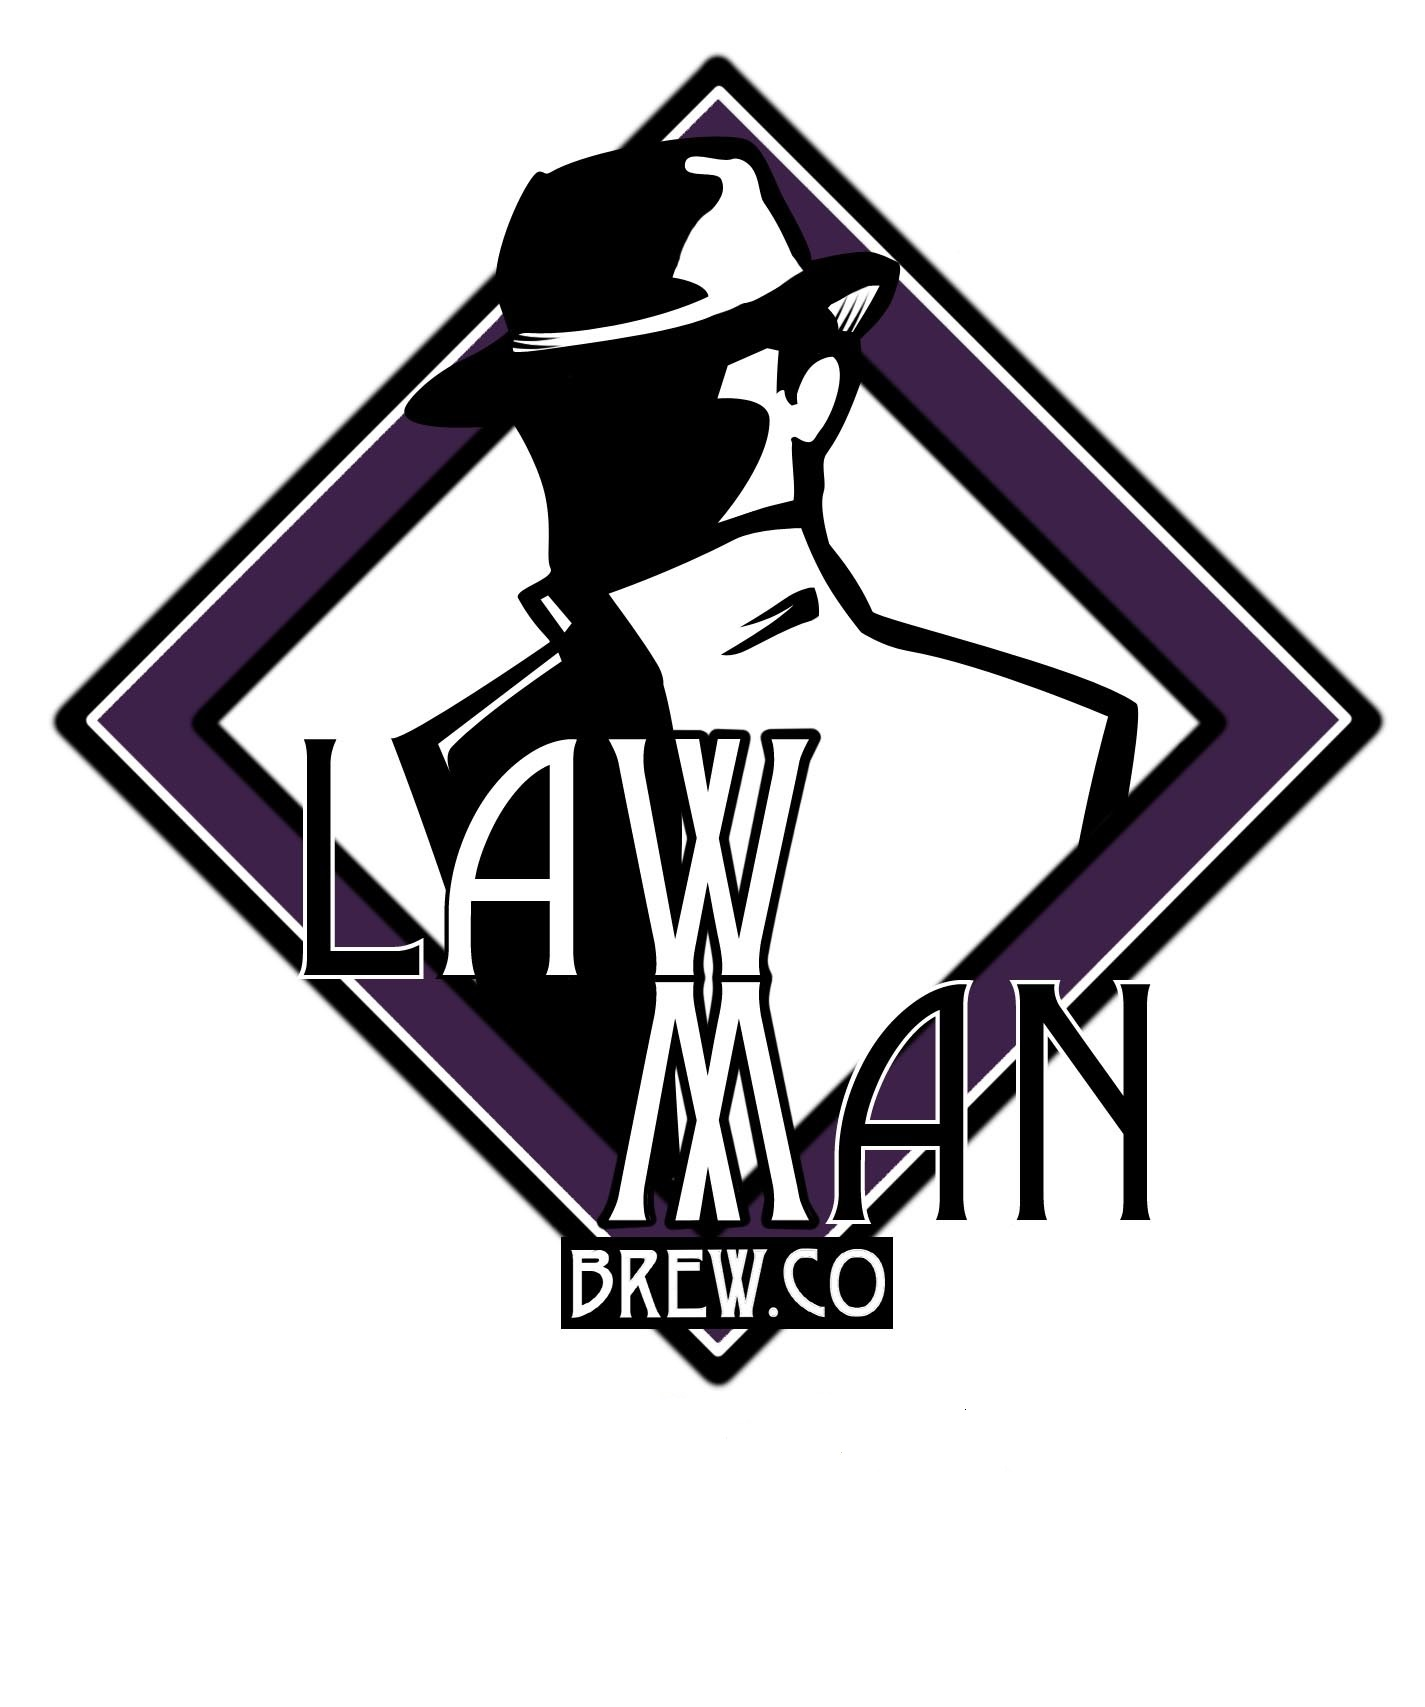 Lawman Brewing Company